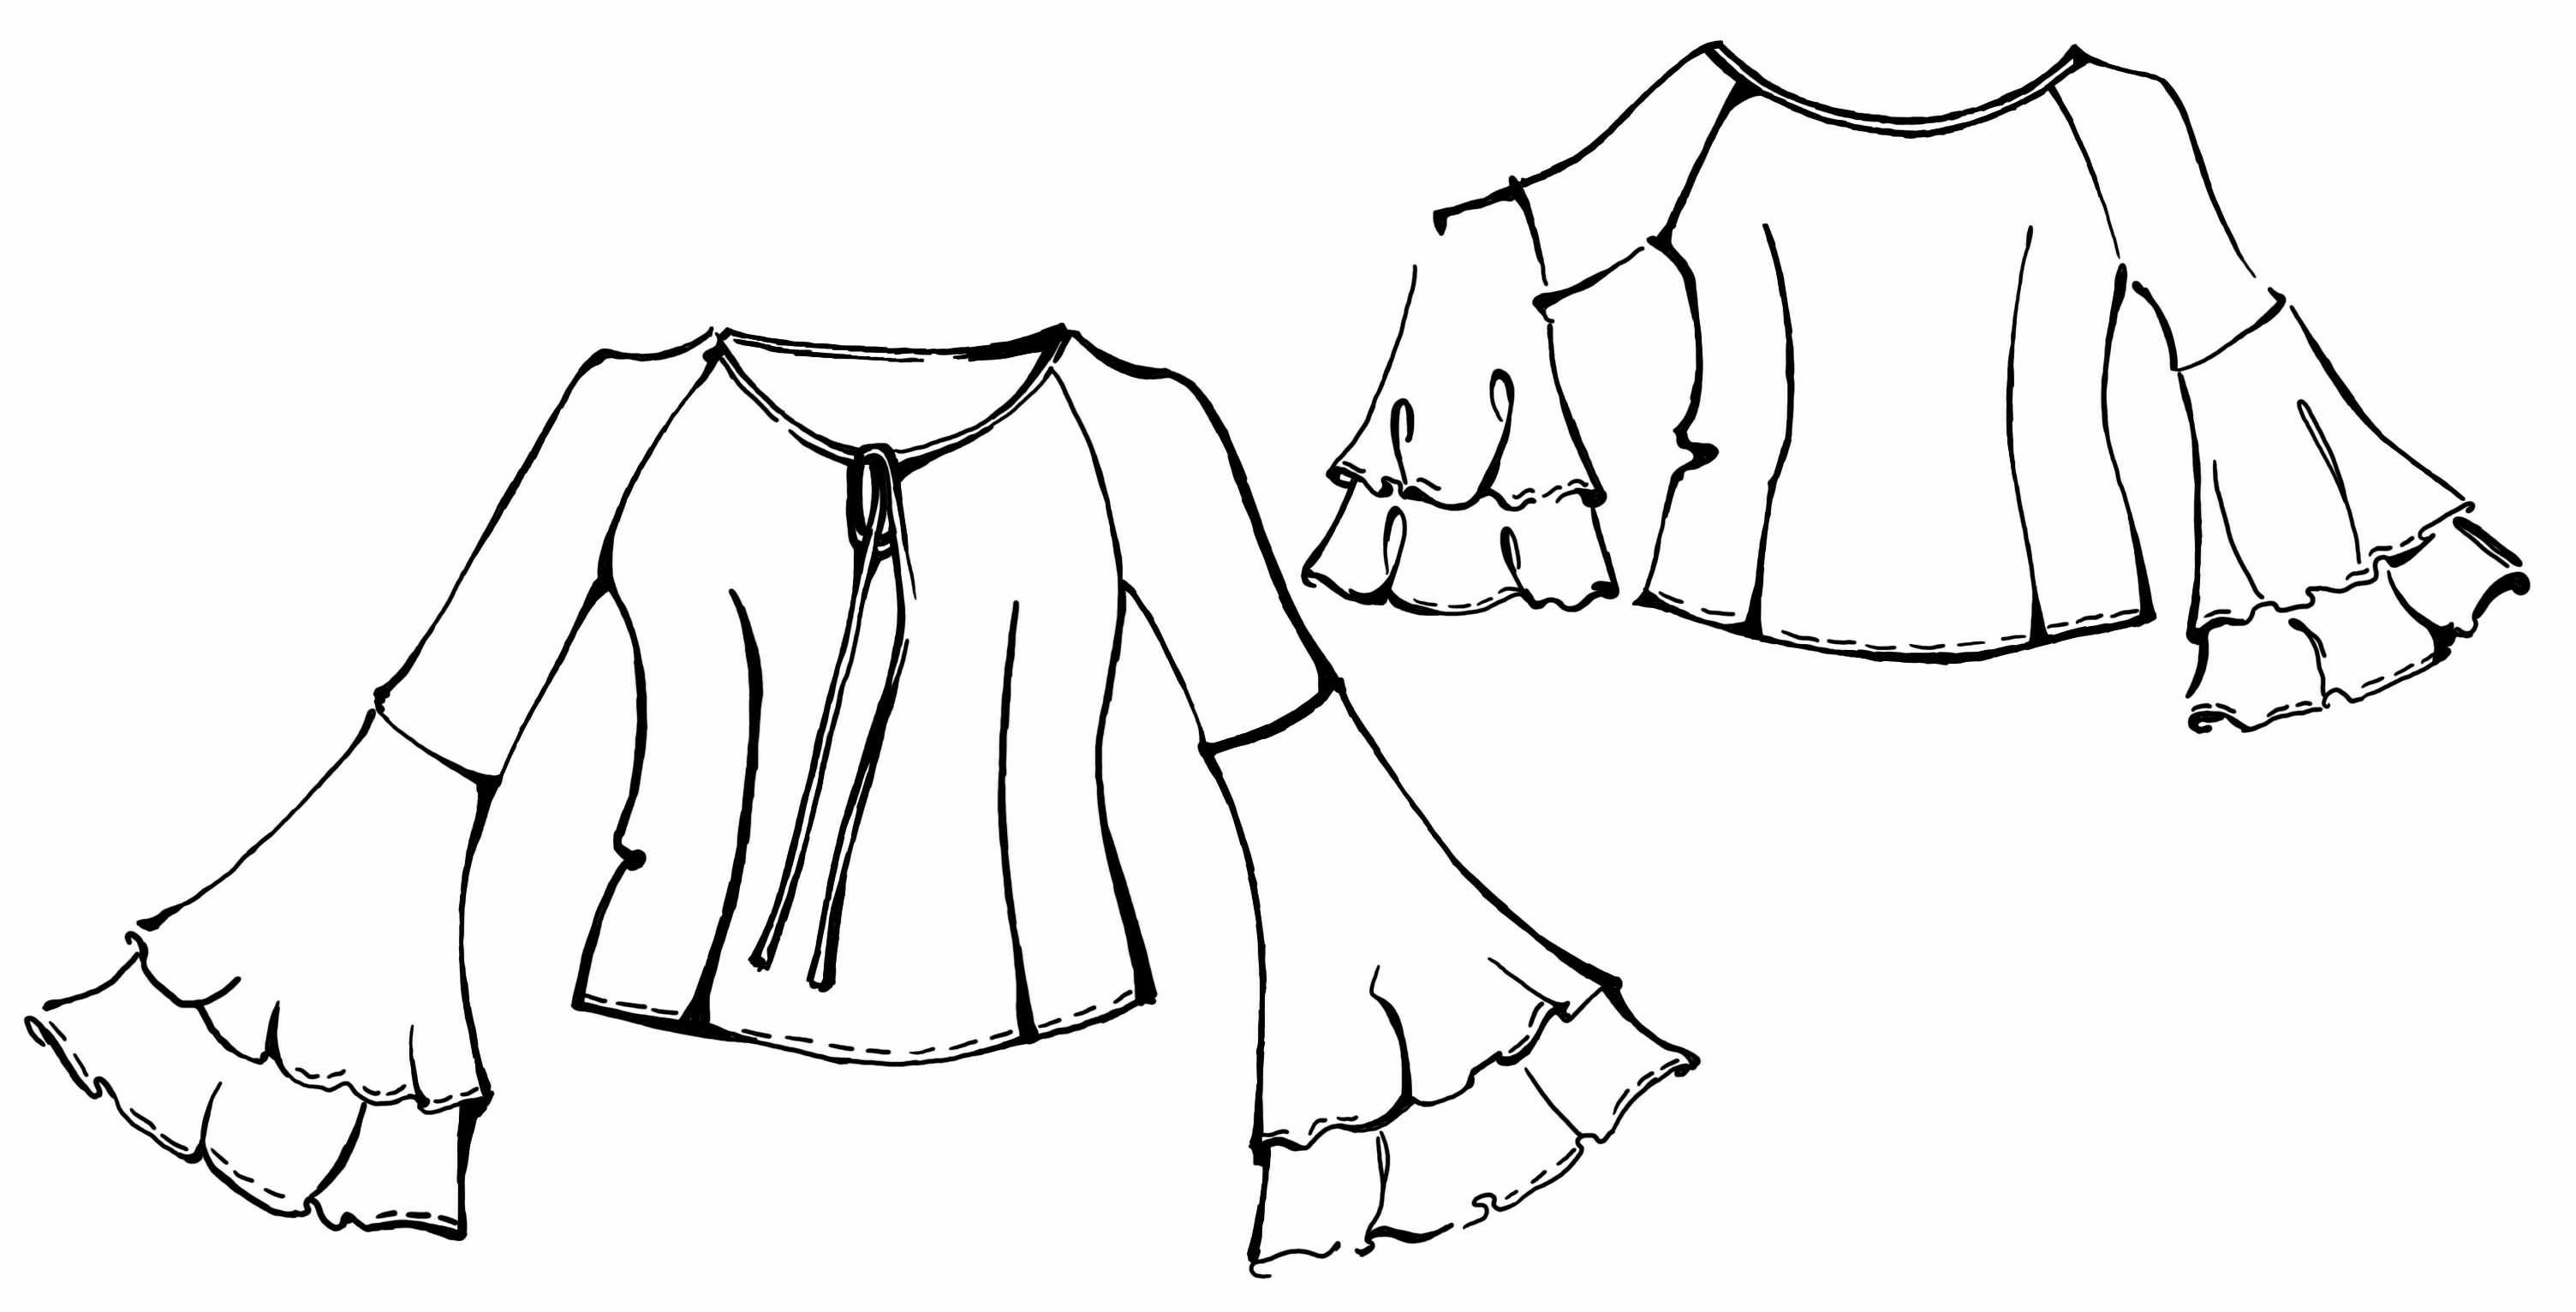 New Model Blouse Designs